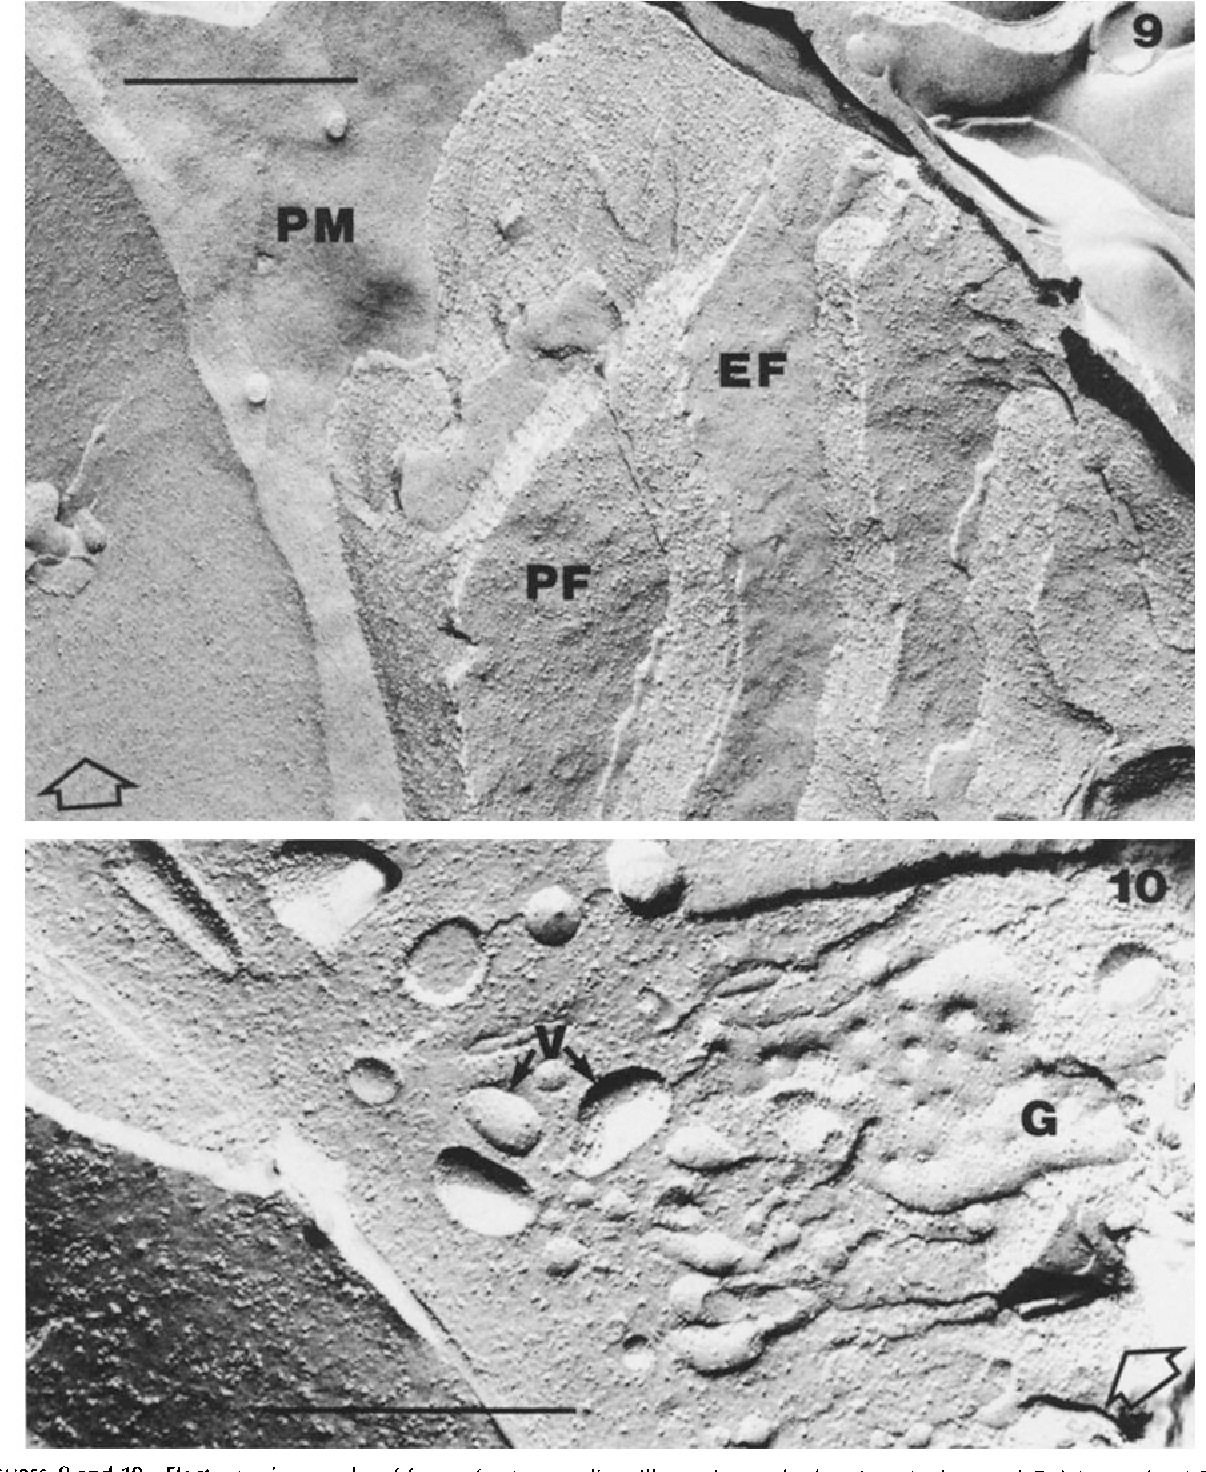 FIGURE 9 Micrograph illustrating the EF leaflet of the inner segment plasma membrane (PM) as well as PF and EF leaflets of elongated cisternae of endoplasmic reticulum. x 59,700.